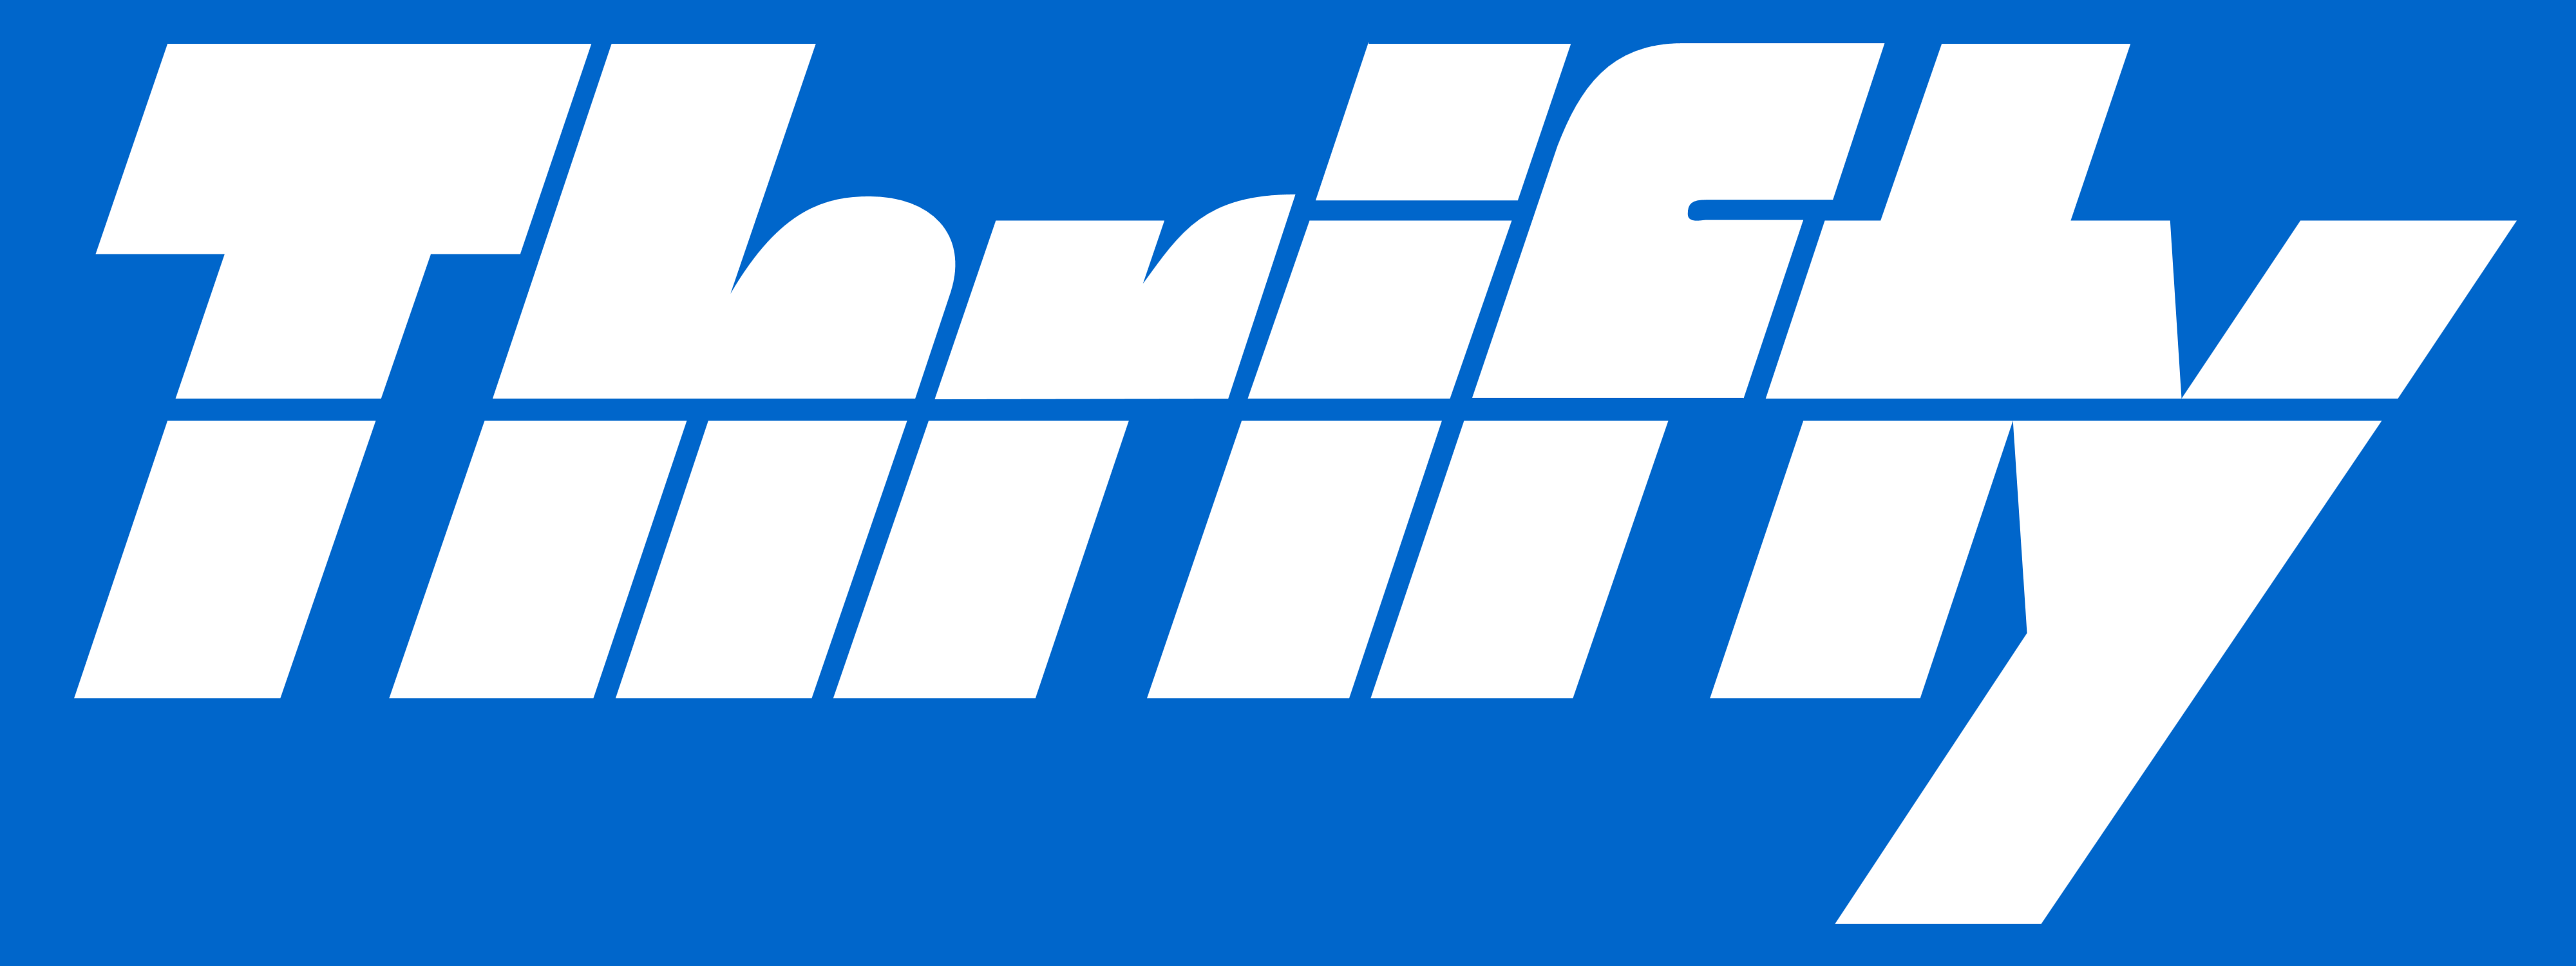 Thrifty Car Rentals >> Thrifty Car Rental Logos Download